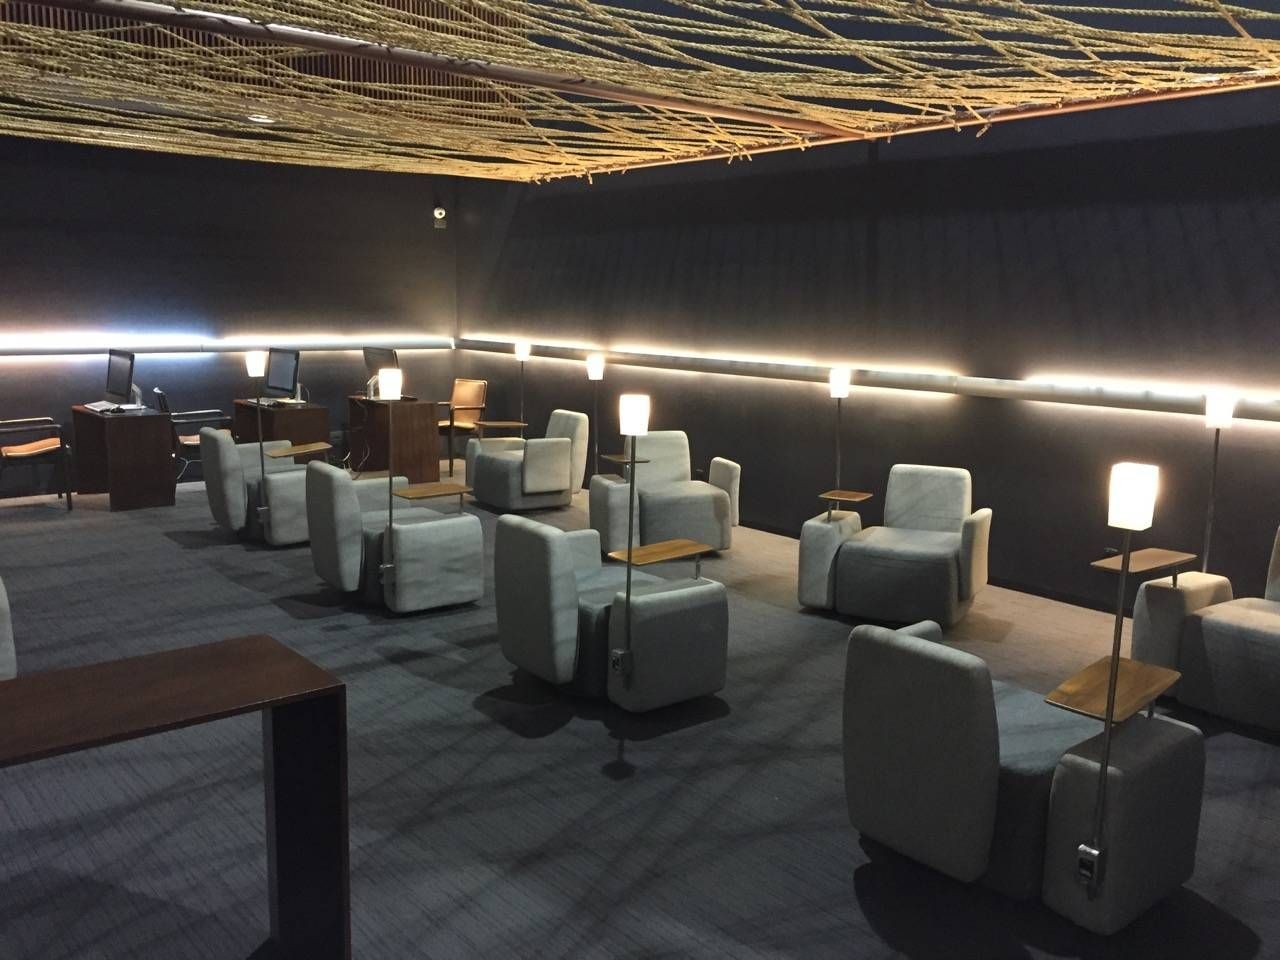 Star Alliance Lounge GRU-017